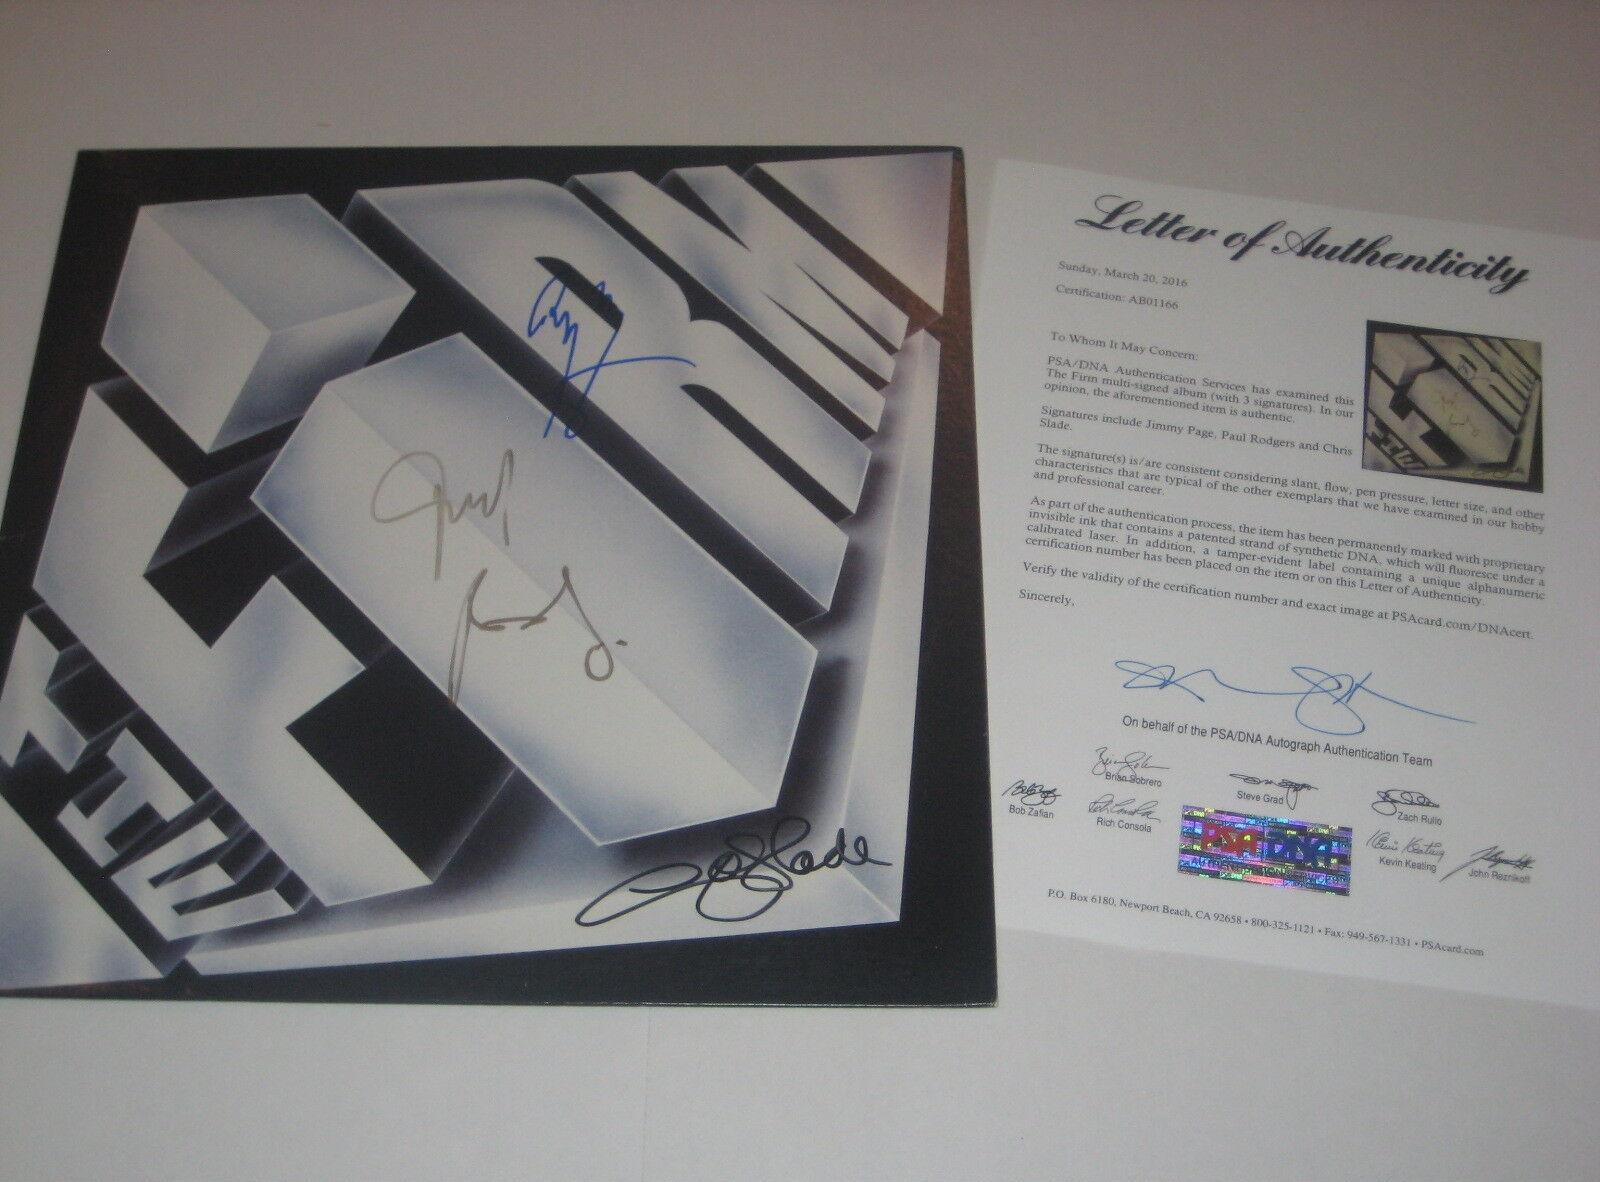 JIMMY PAGE, PAUL ROGERS & CHRIS SLADE Signed THE FIRM Album w/ PSA LOA